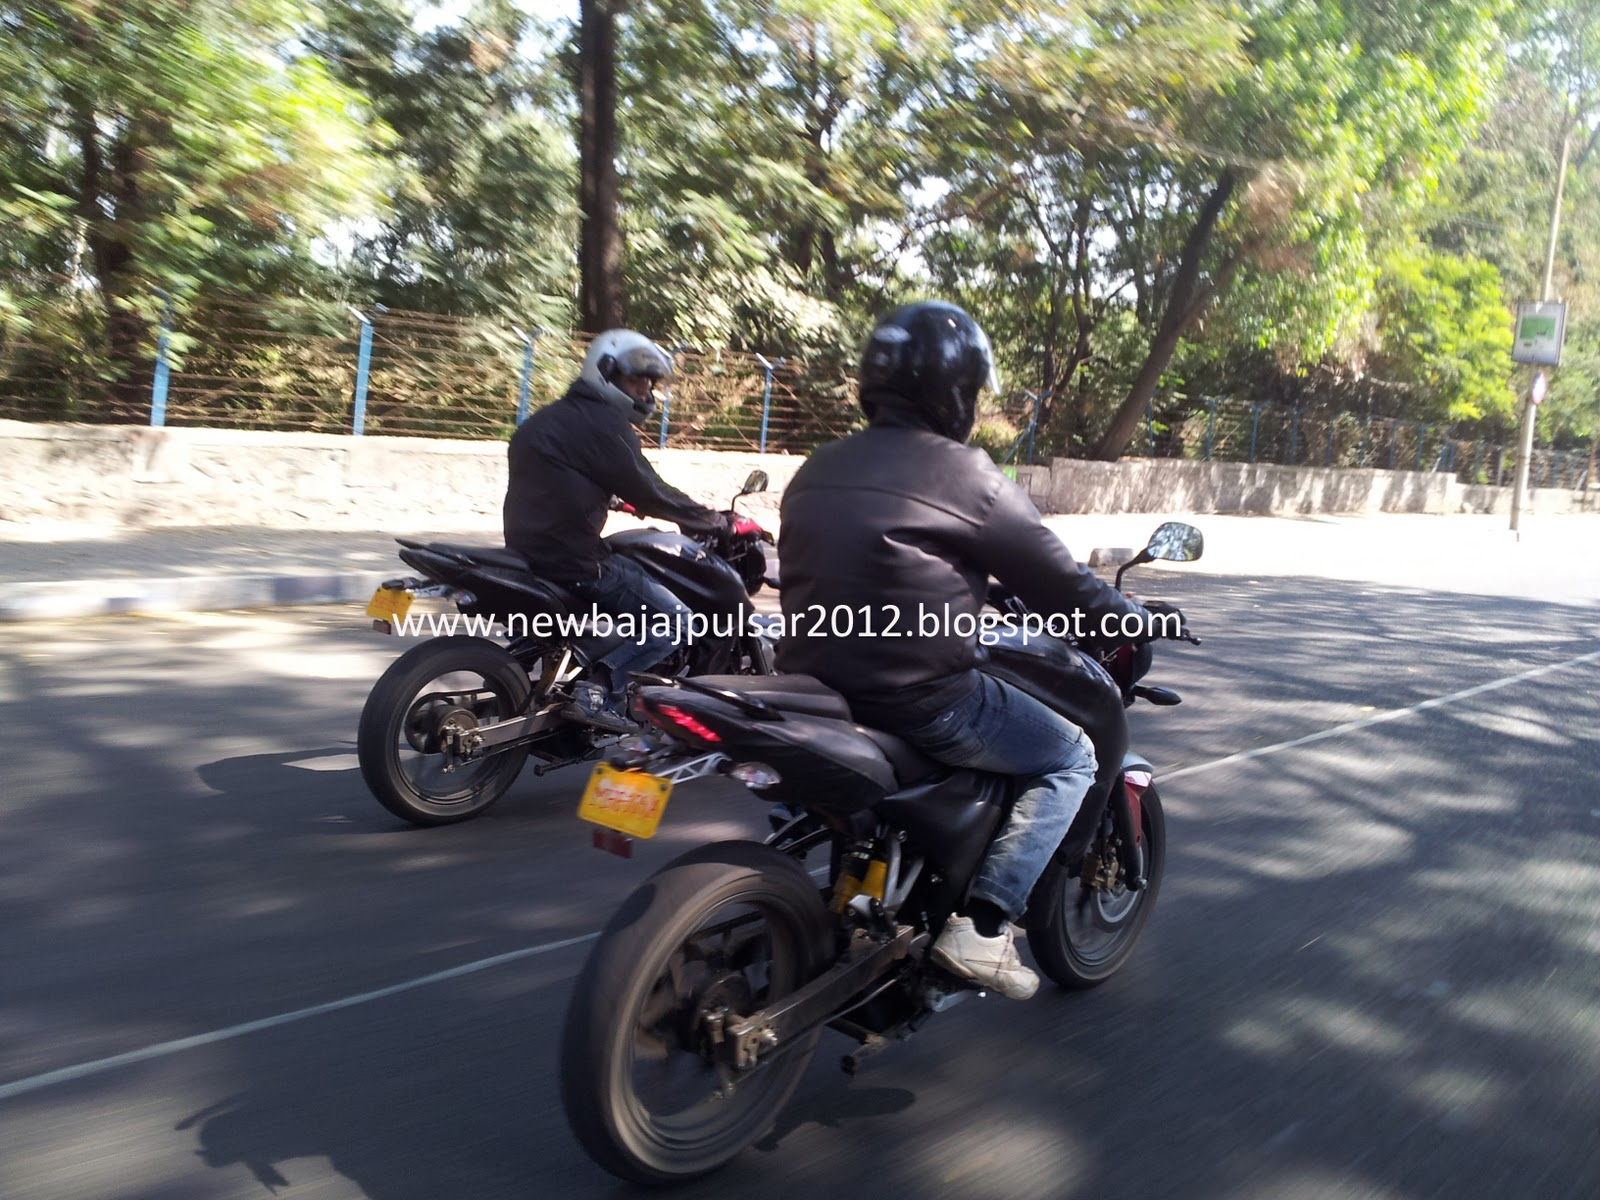 Bajaj Pulsar 2012, have a closer look